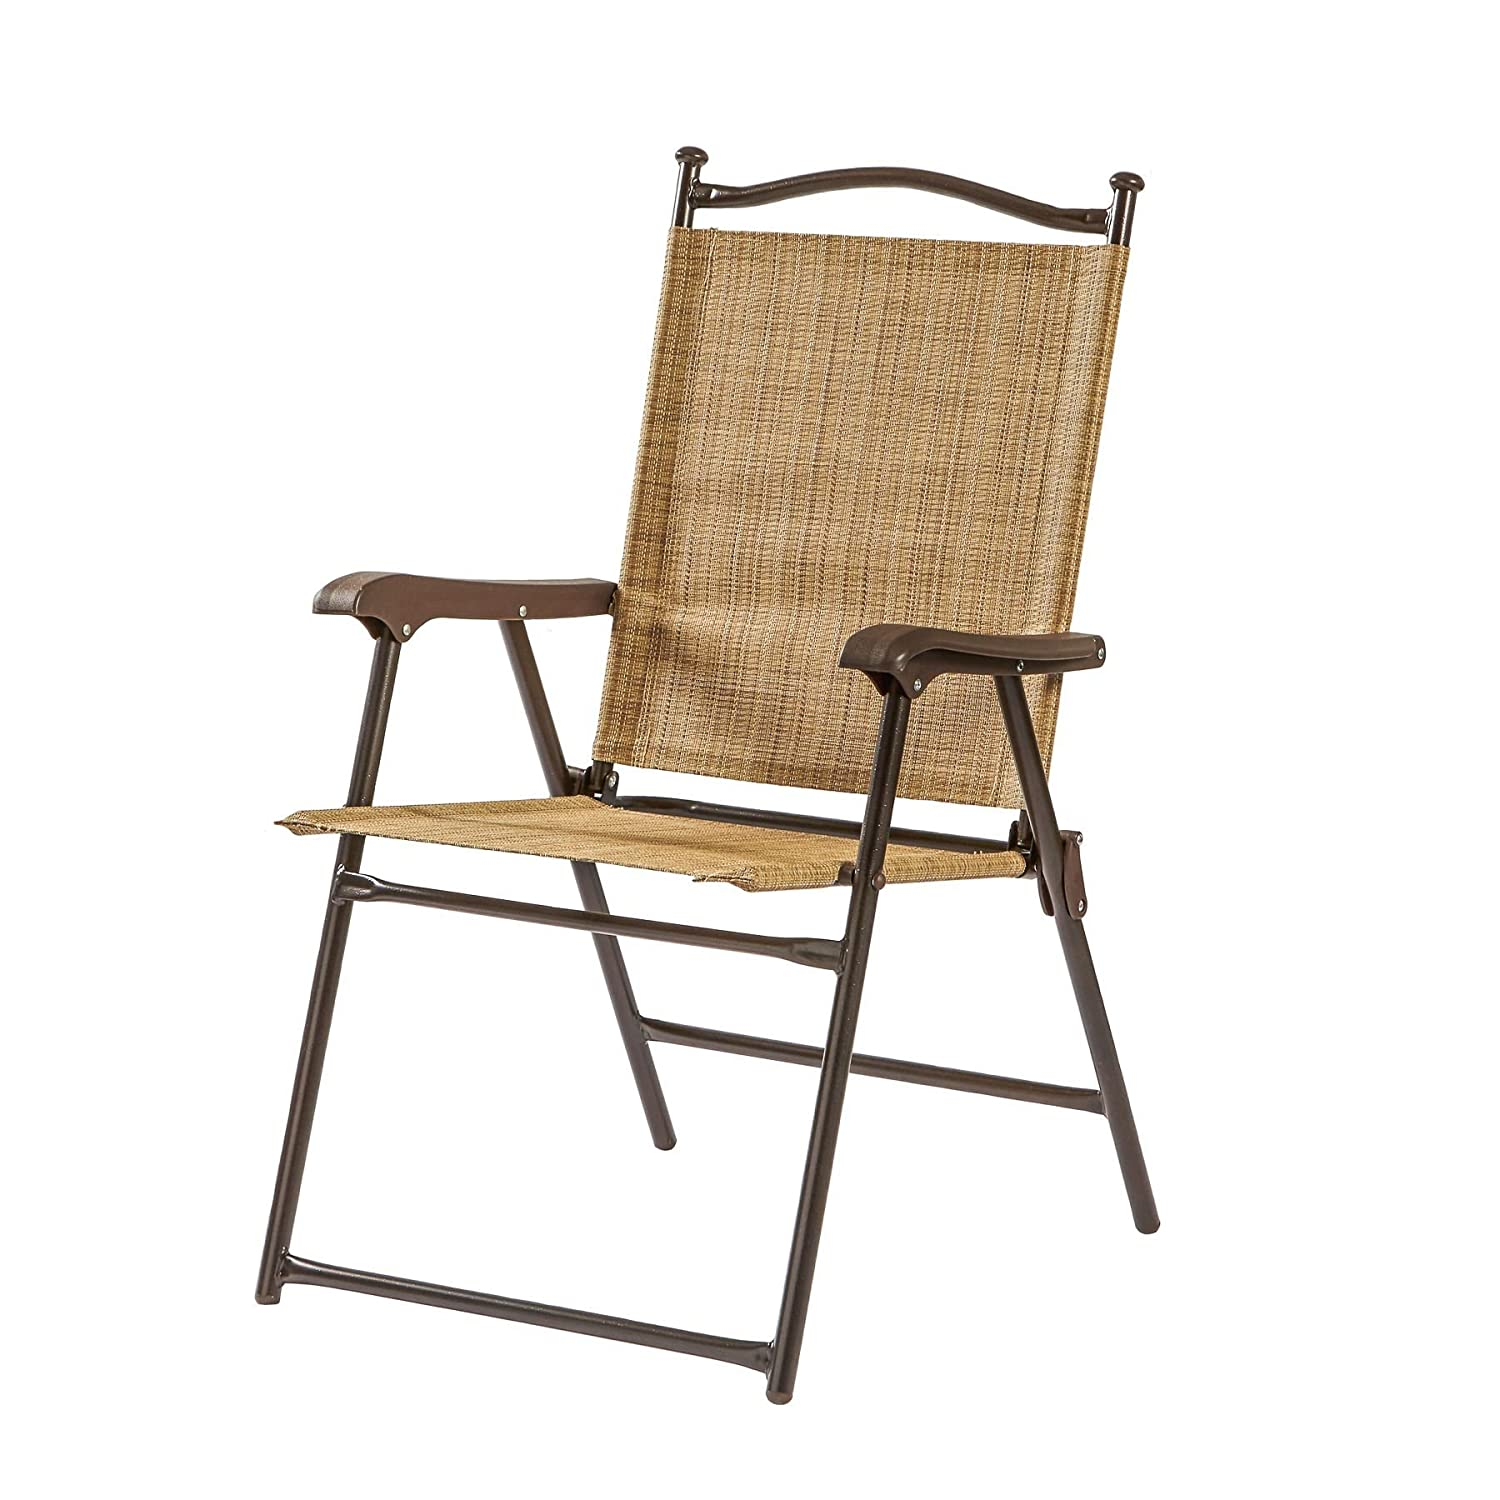 online pdp garden natural main buyjohn john longstock chairs folding fsc rsp teak certified lewis chair